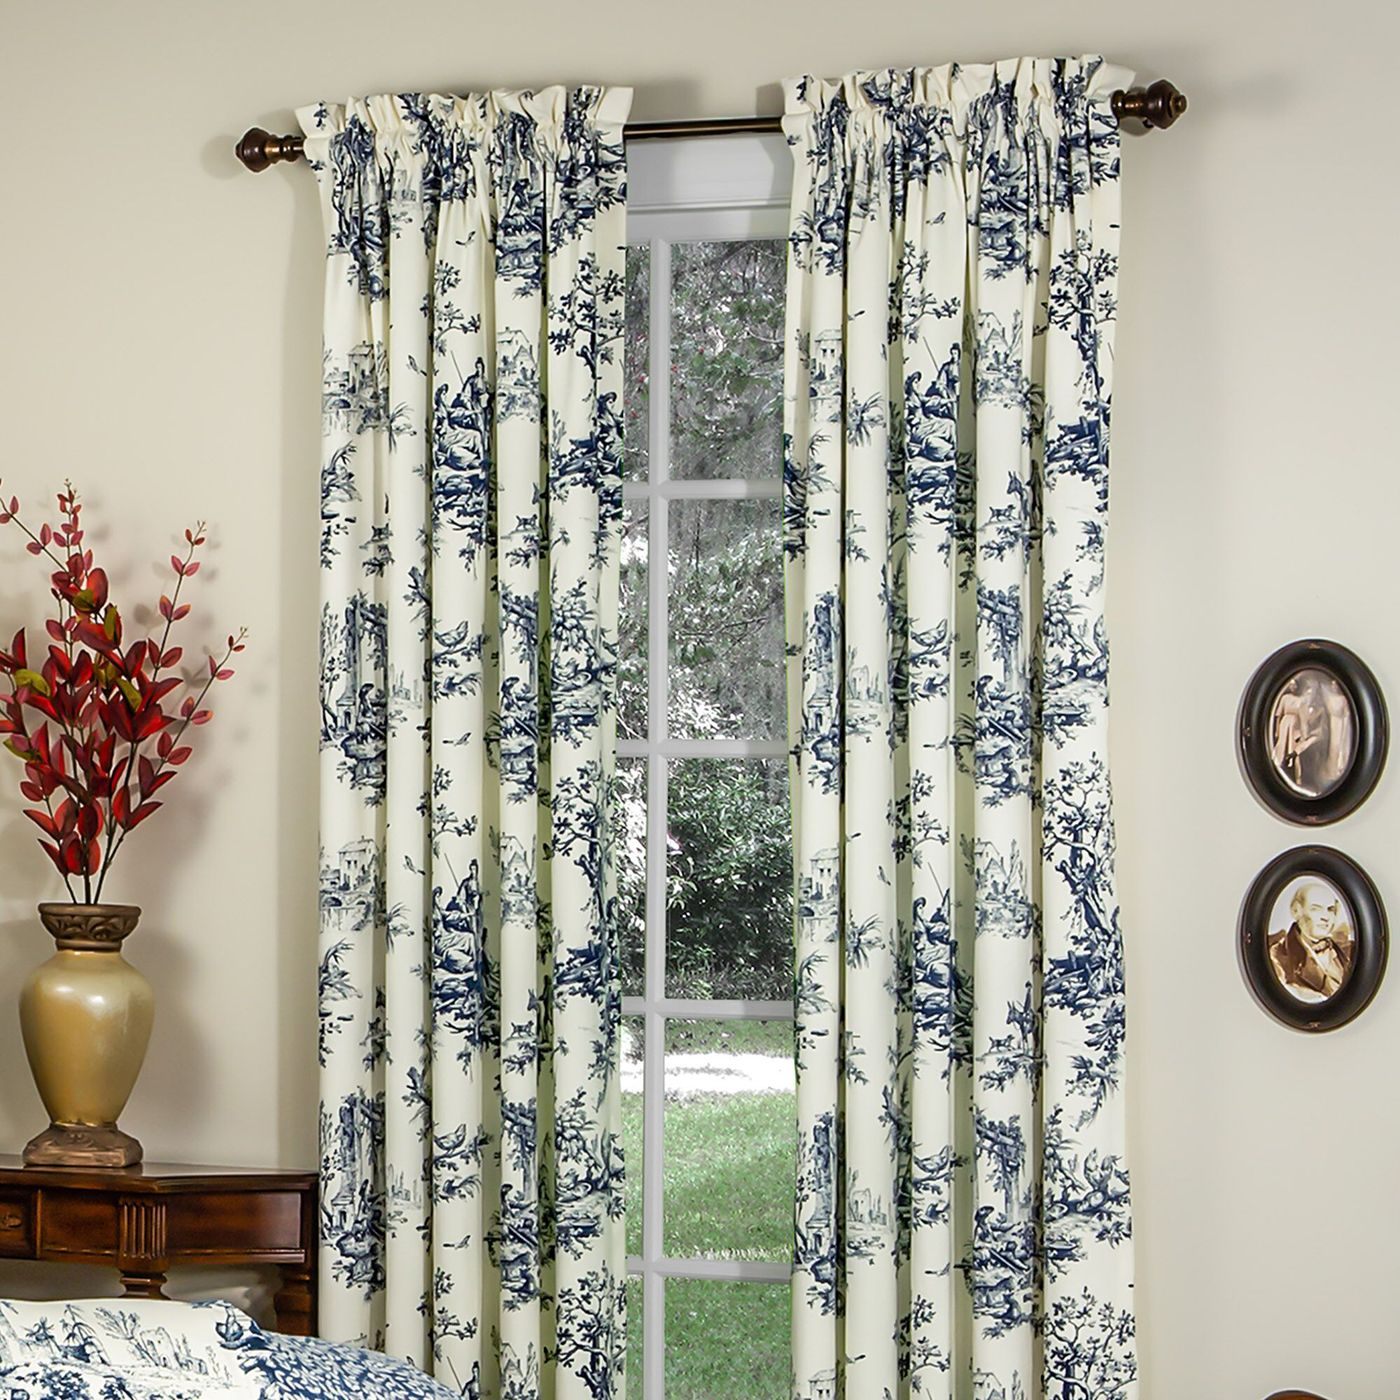 Jacquard Window 84 Inch Length Curtain Drapes w//attached Valance Scarf 2 Tassels Sheer Backing Traditional 84 Floral Curtain Drape for Living//Dining rooms Rod Pocket Taupe//Camel